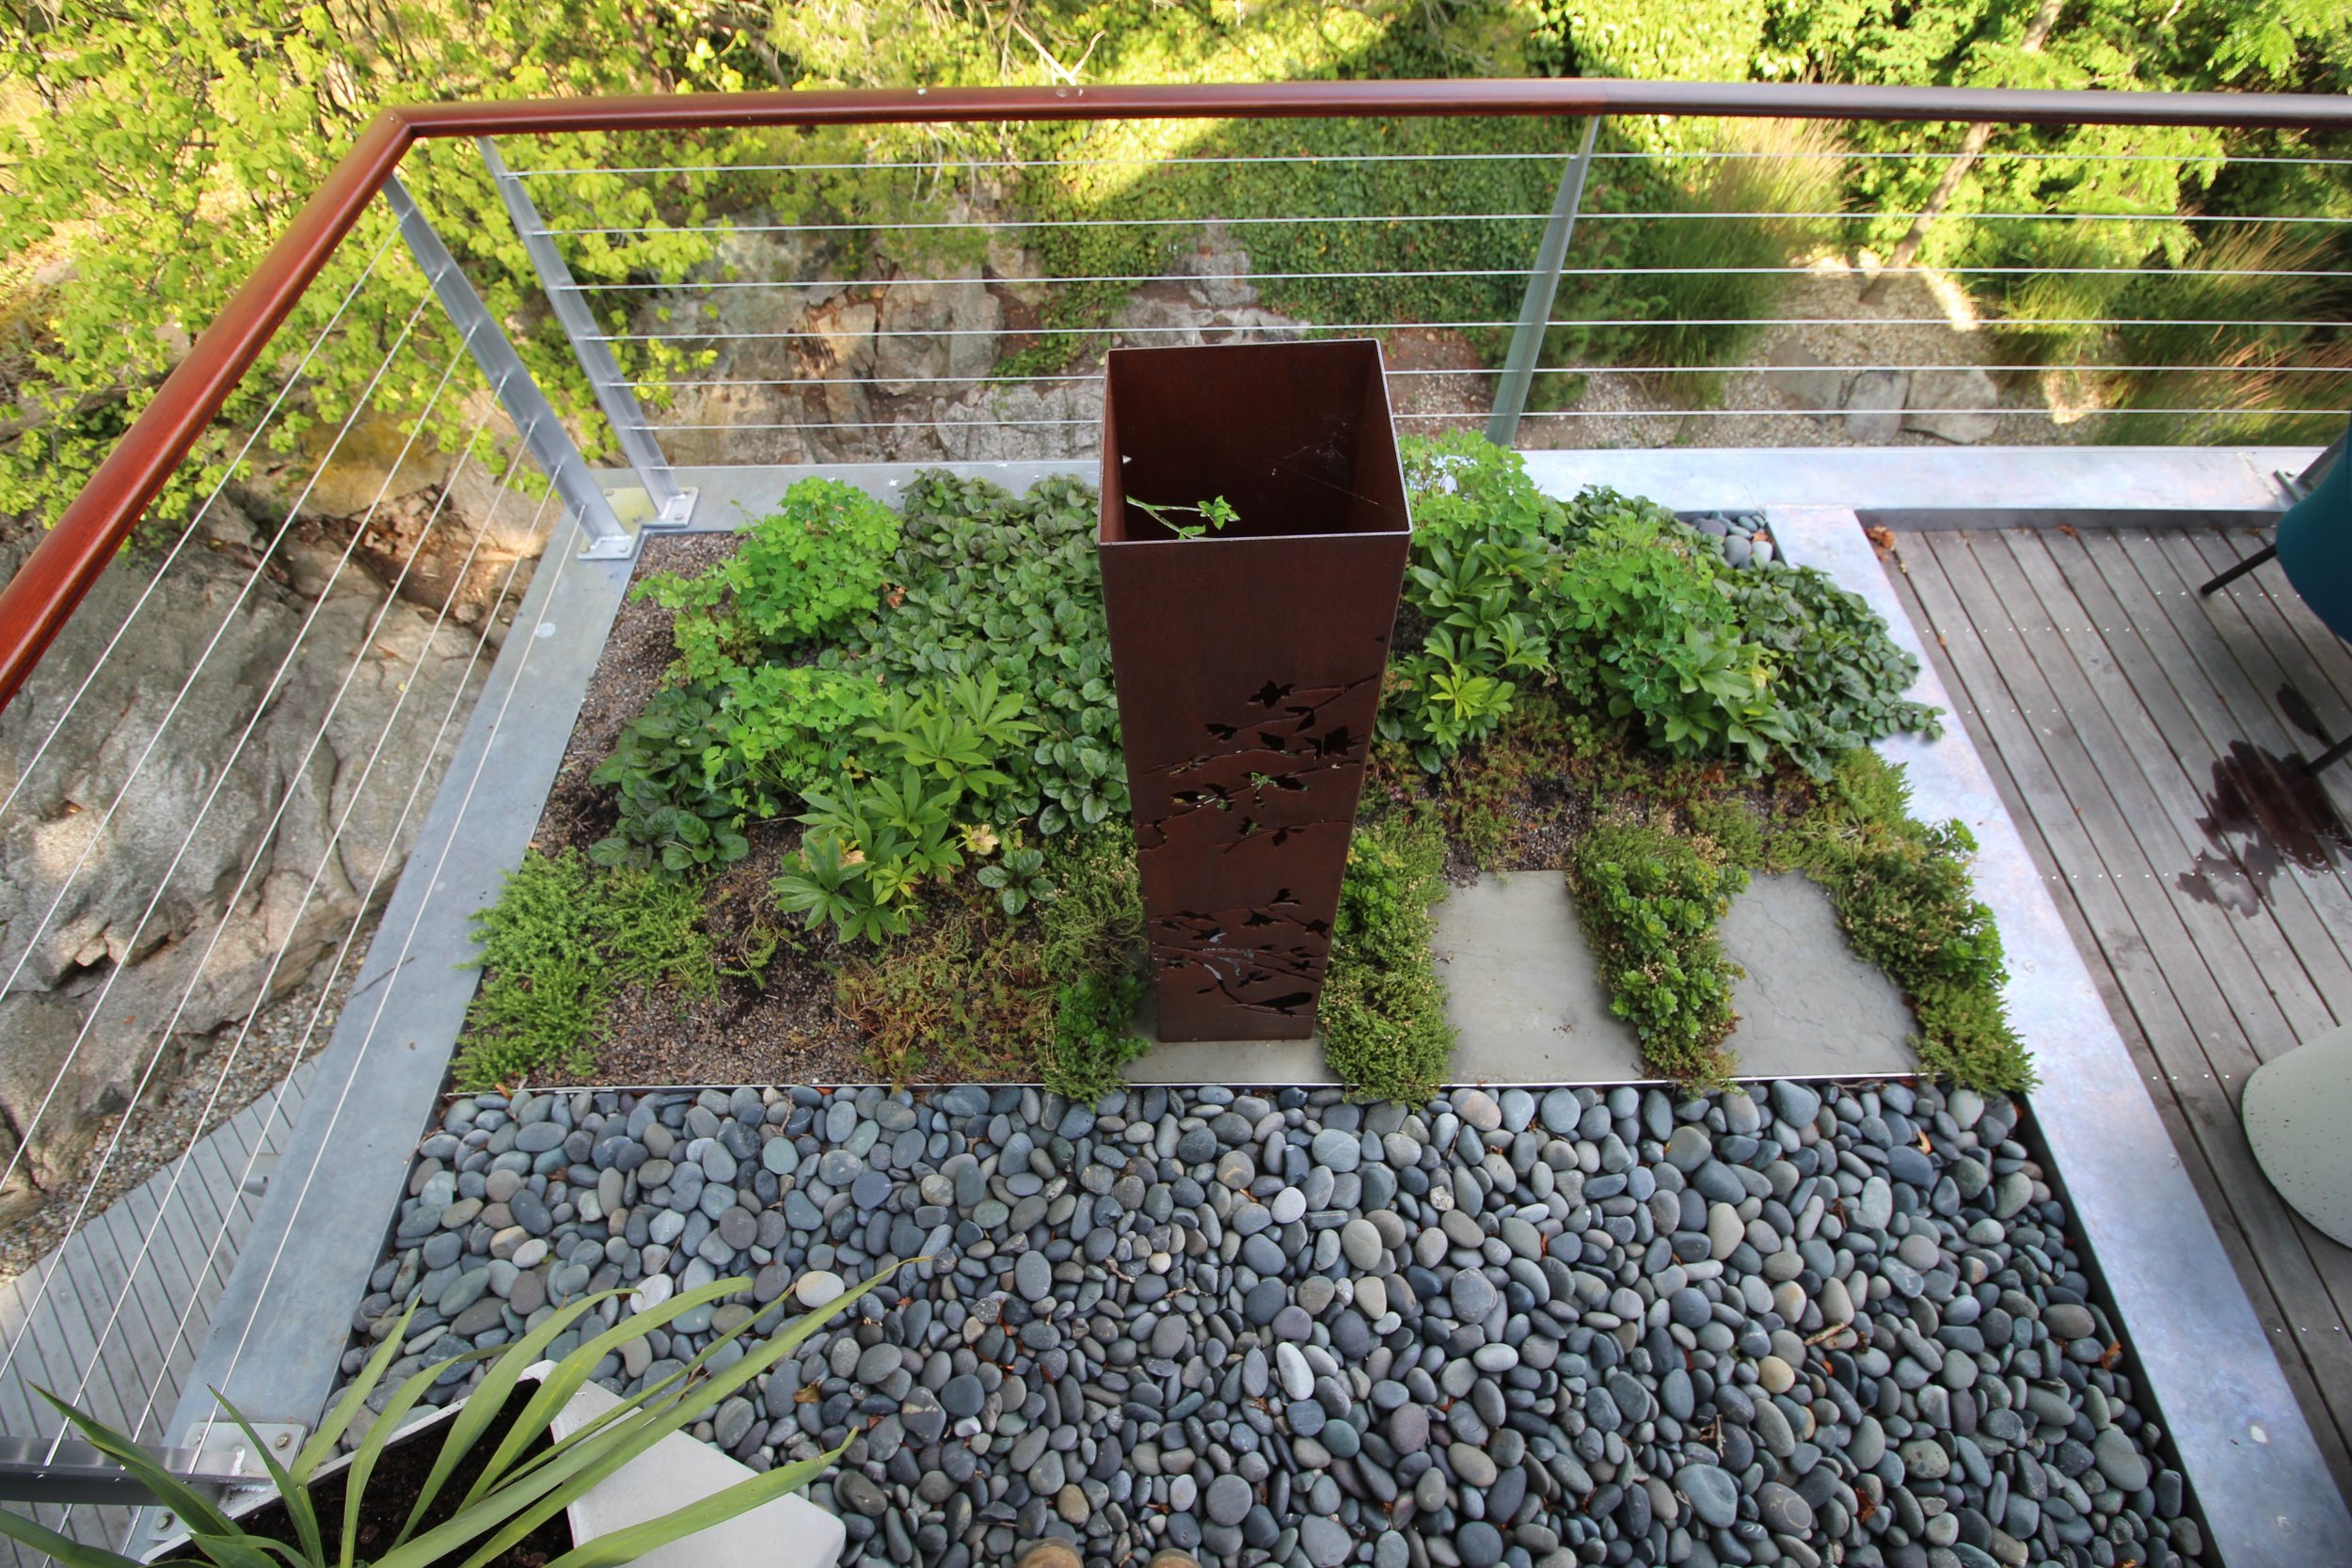 recover-green-roofs-sculpture-patio-2015-2769.jpg